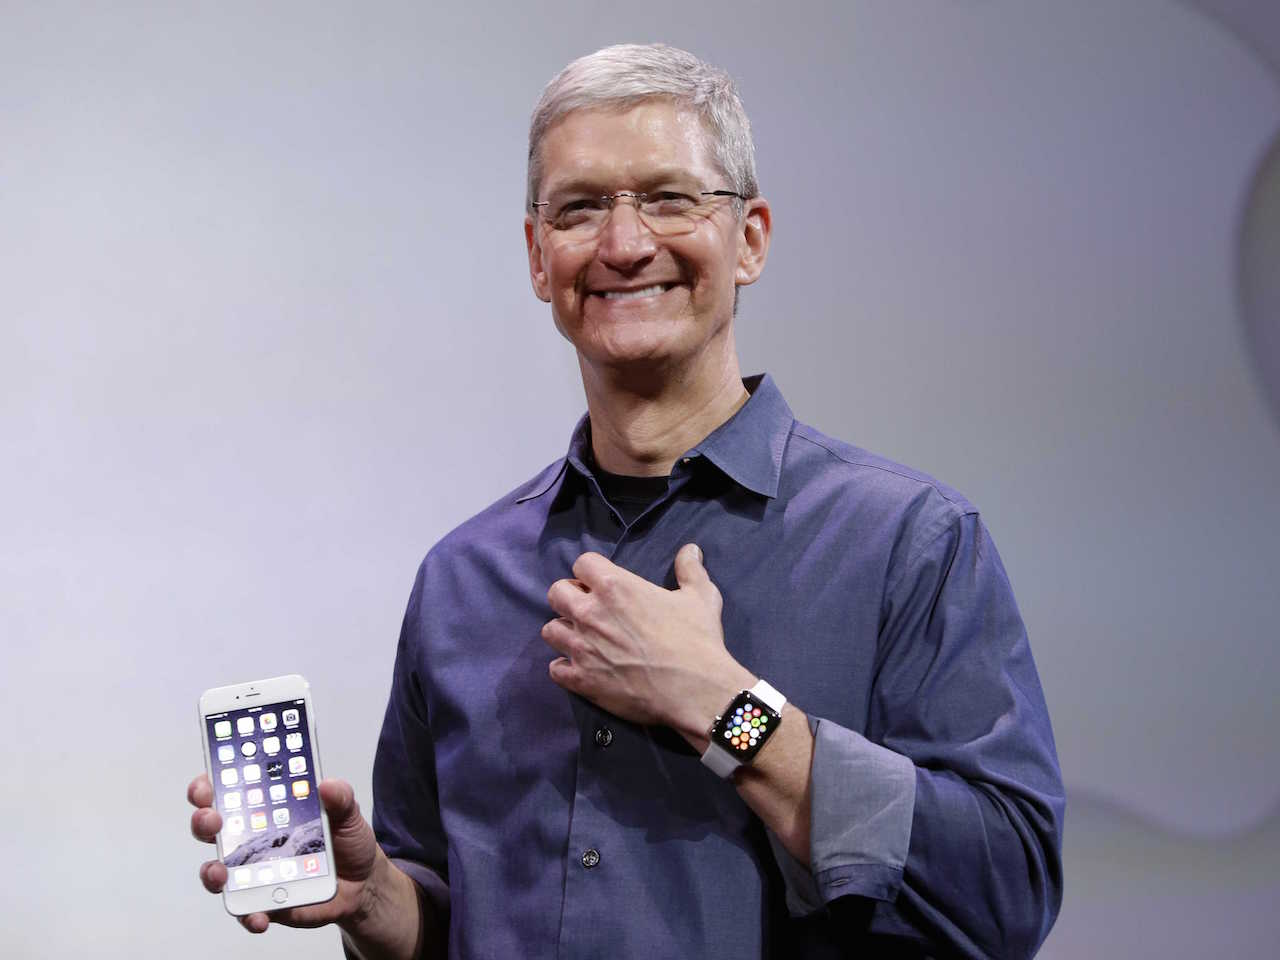 tim_cook_iphone